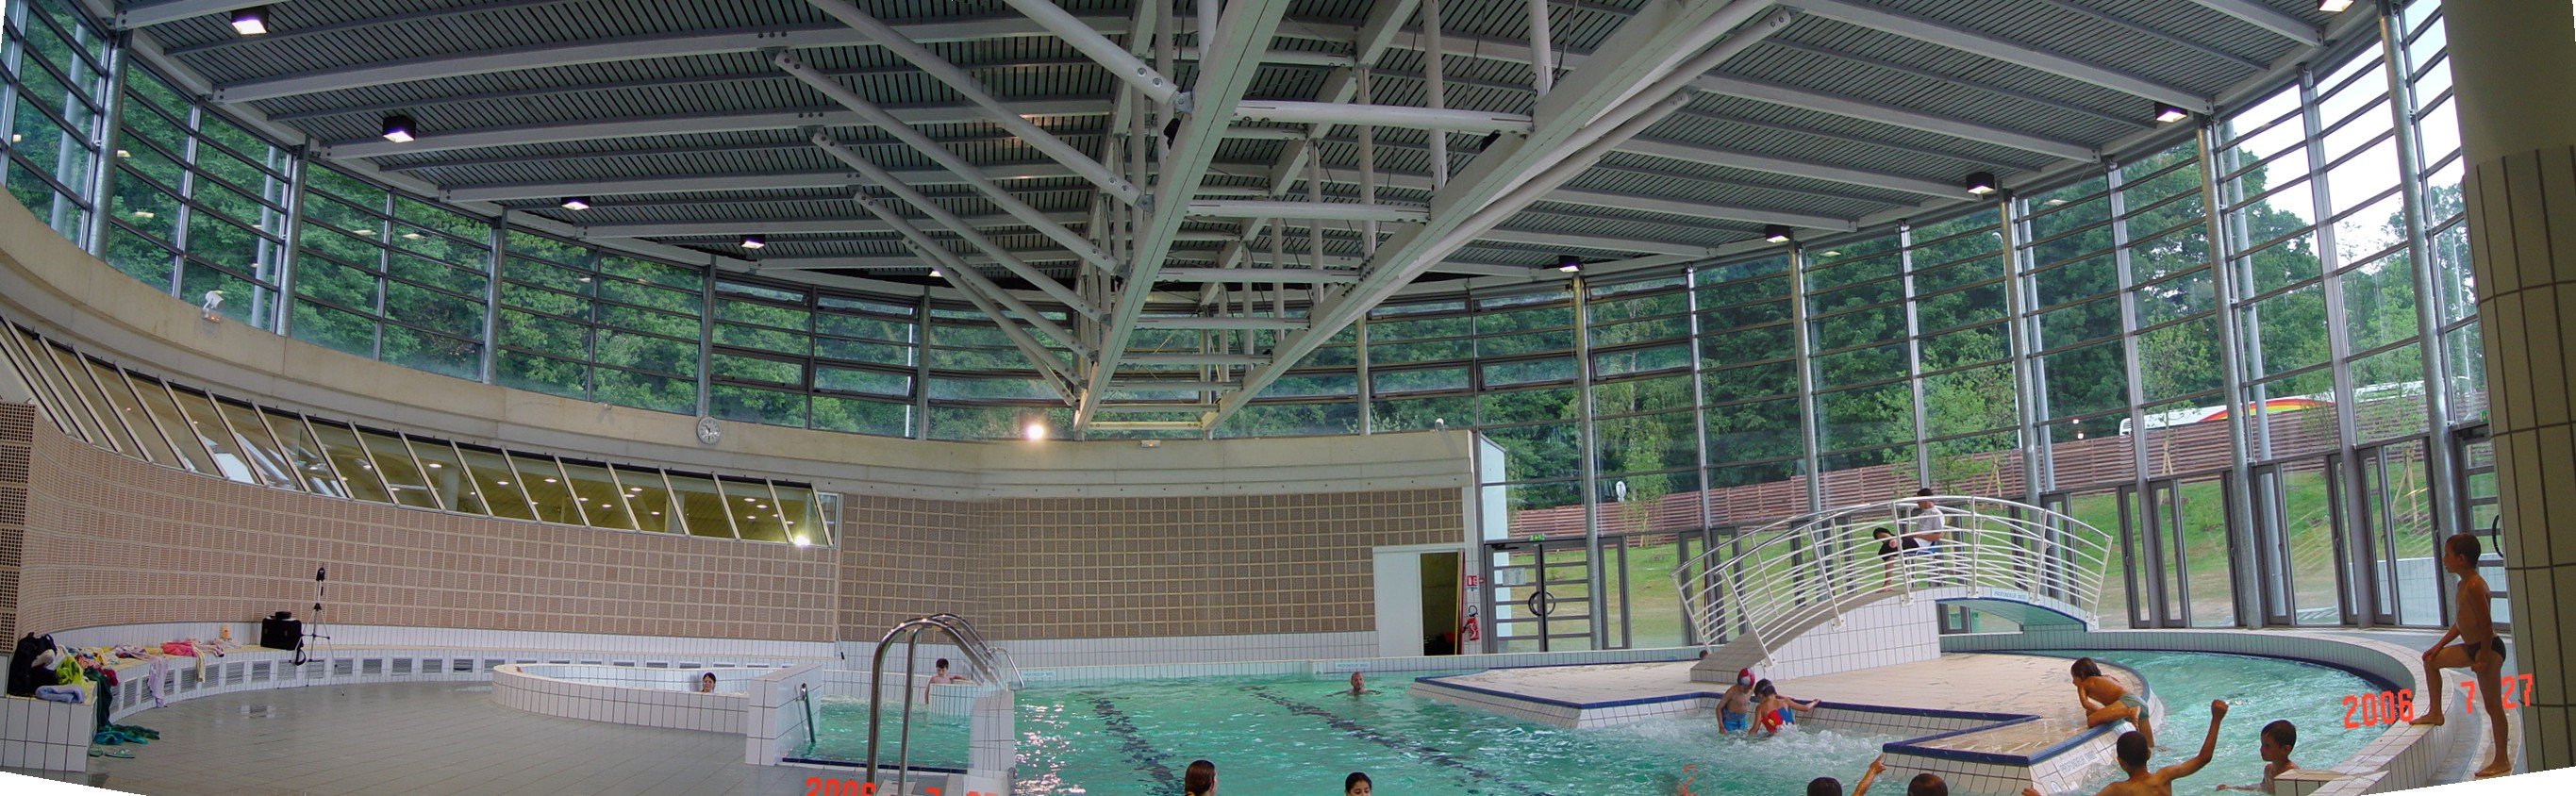 Piscine De St Cloud